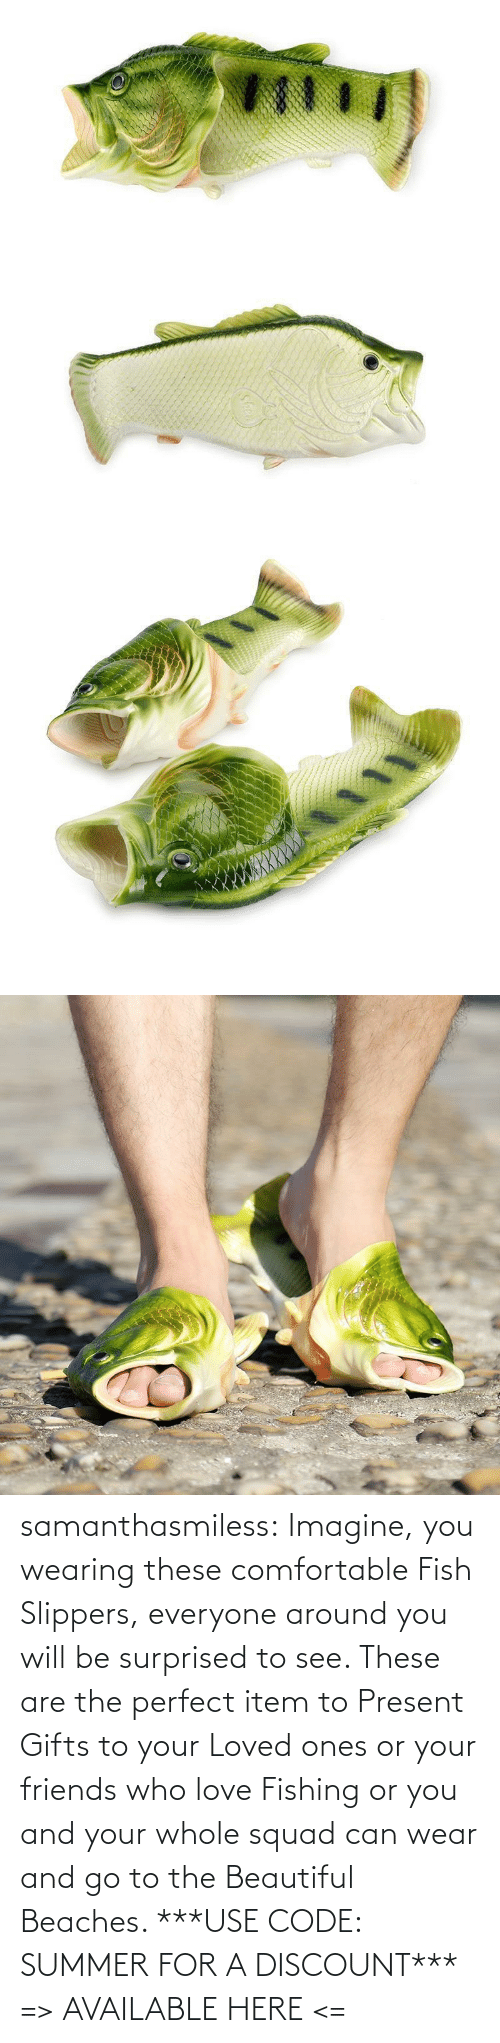 imagine: samanthasmiless: Imagine, you wearing these comfortable Fish Slippers, everyone around you will be surprised to see. These are the perfect item to Present Gifts to your Loved ones or your friends who love Fishing or you and your whole squad can wear and go to the Beautiful Beaches.  ***USE CODE: SUMMER FOR A DISCOUNT*** => AVAILABLE HERE <=